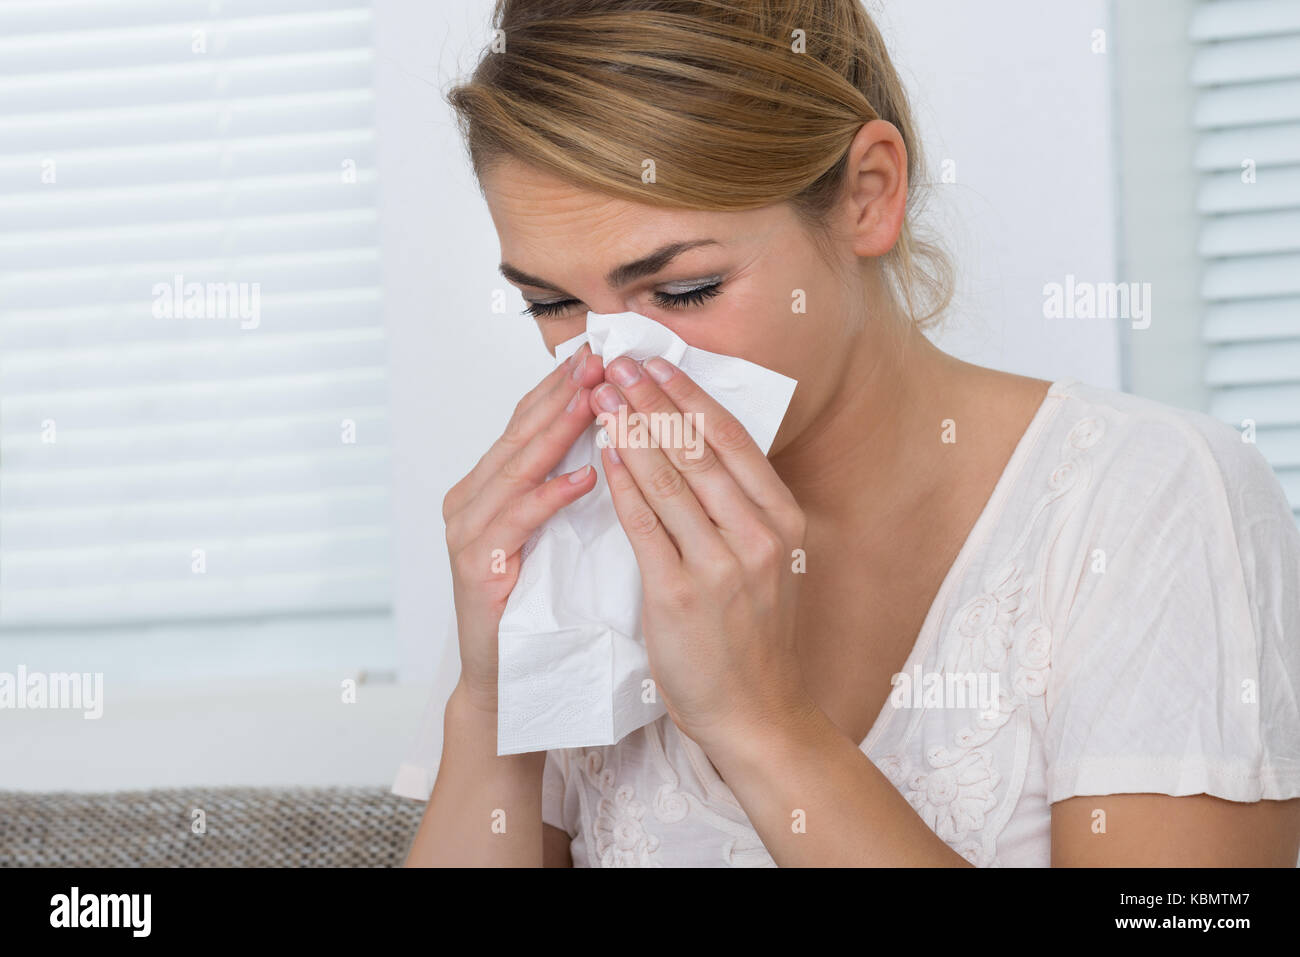 Young woman blowing nose while suffering from cold at home - Stock Image